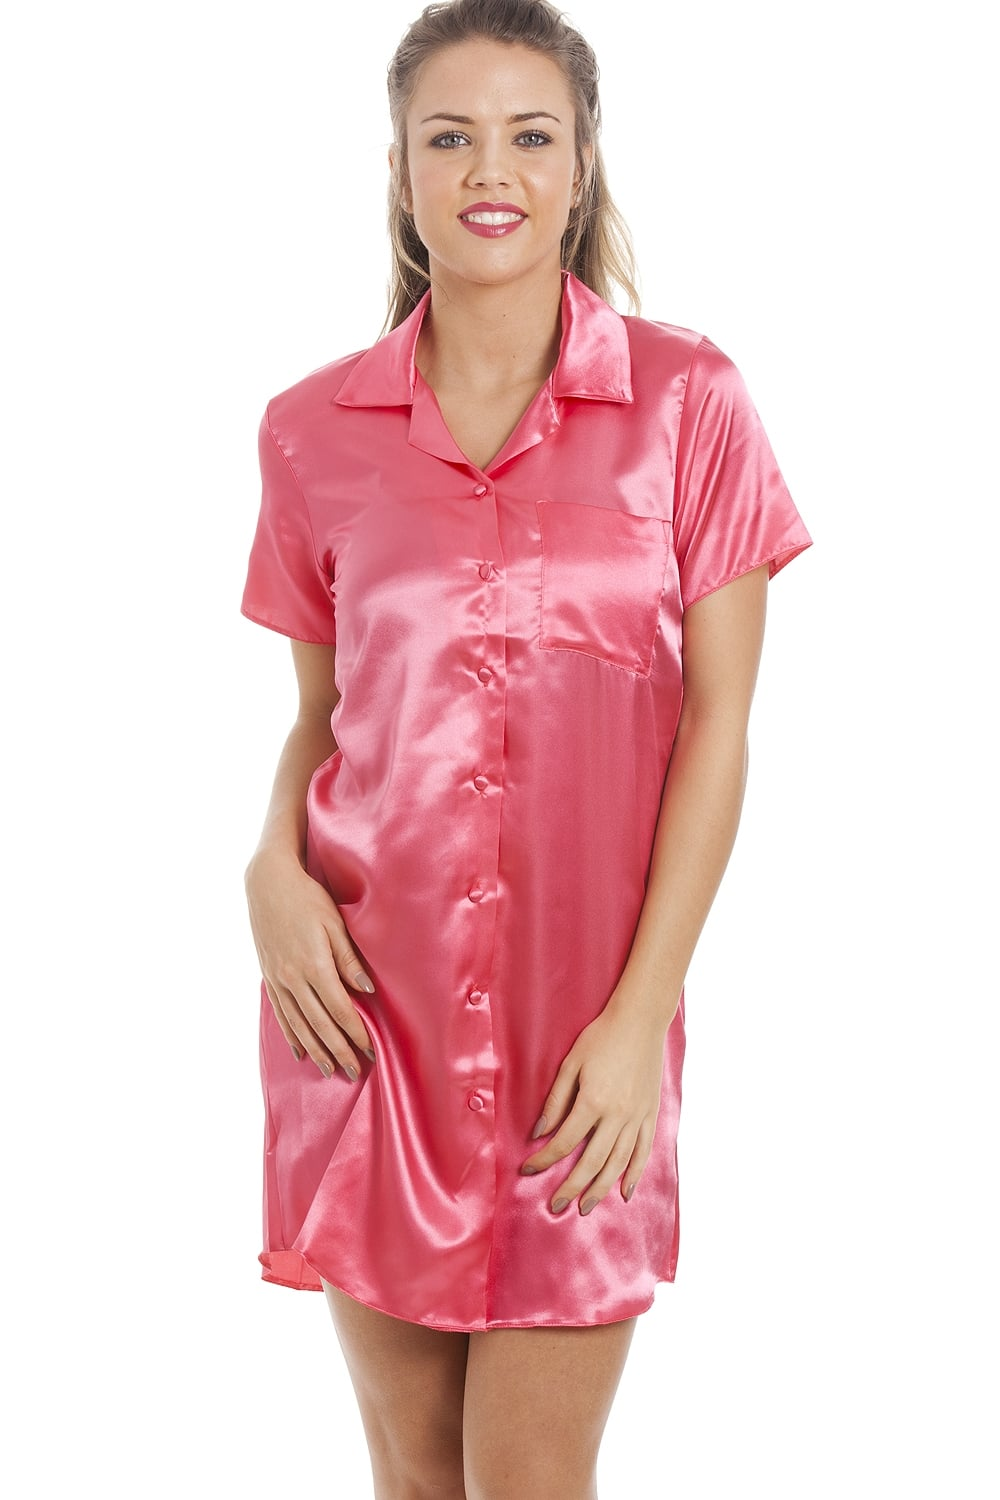 Luxurious Knee Length Coral Pink Satin Nightshirt f59bfbac9